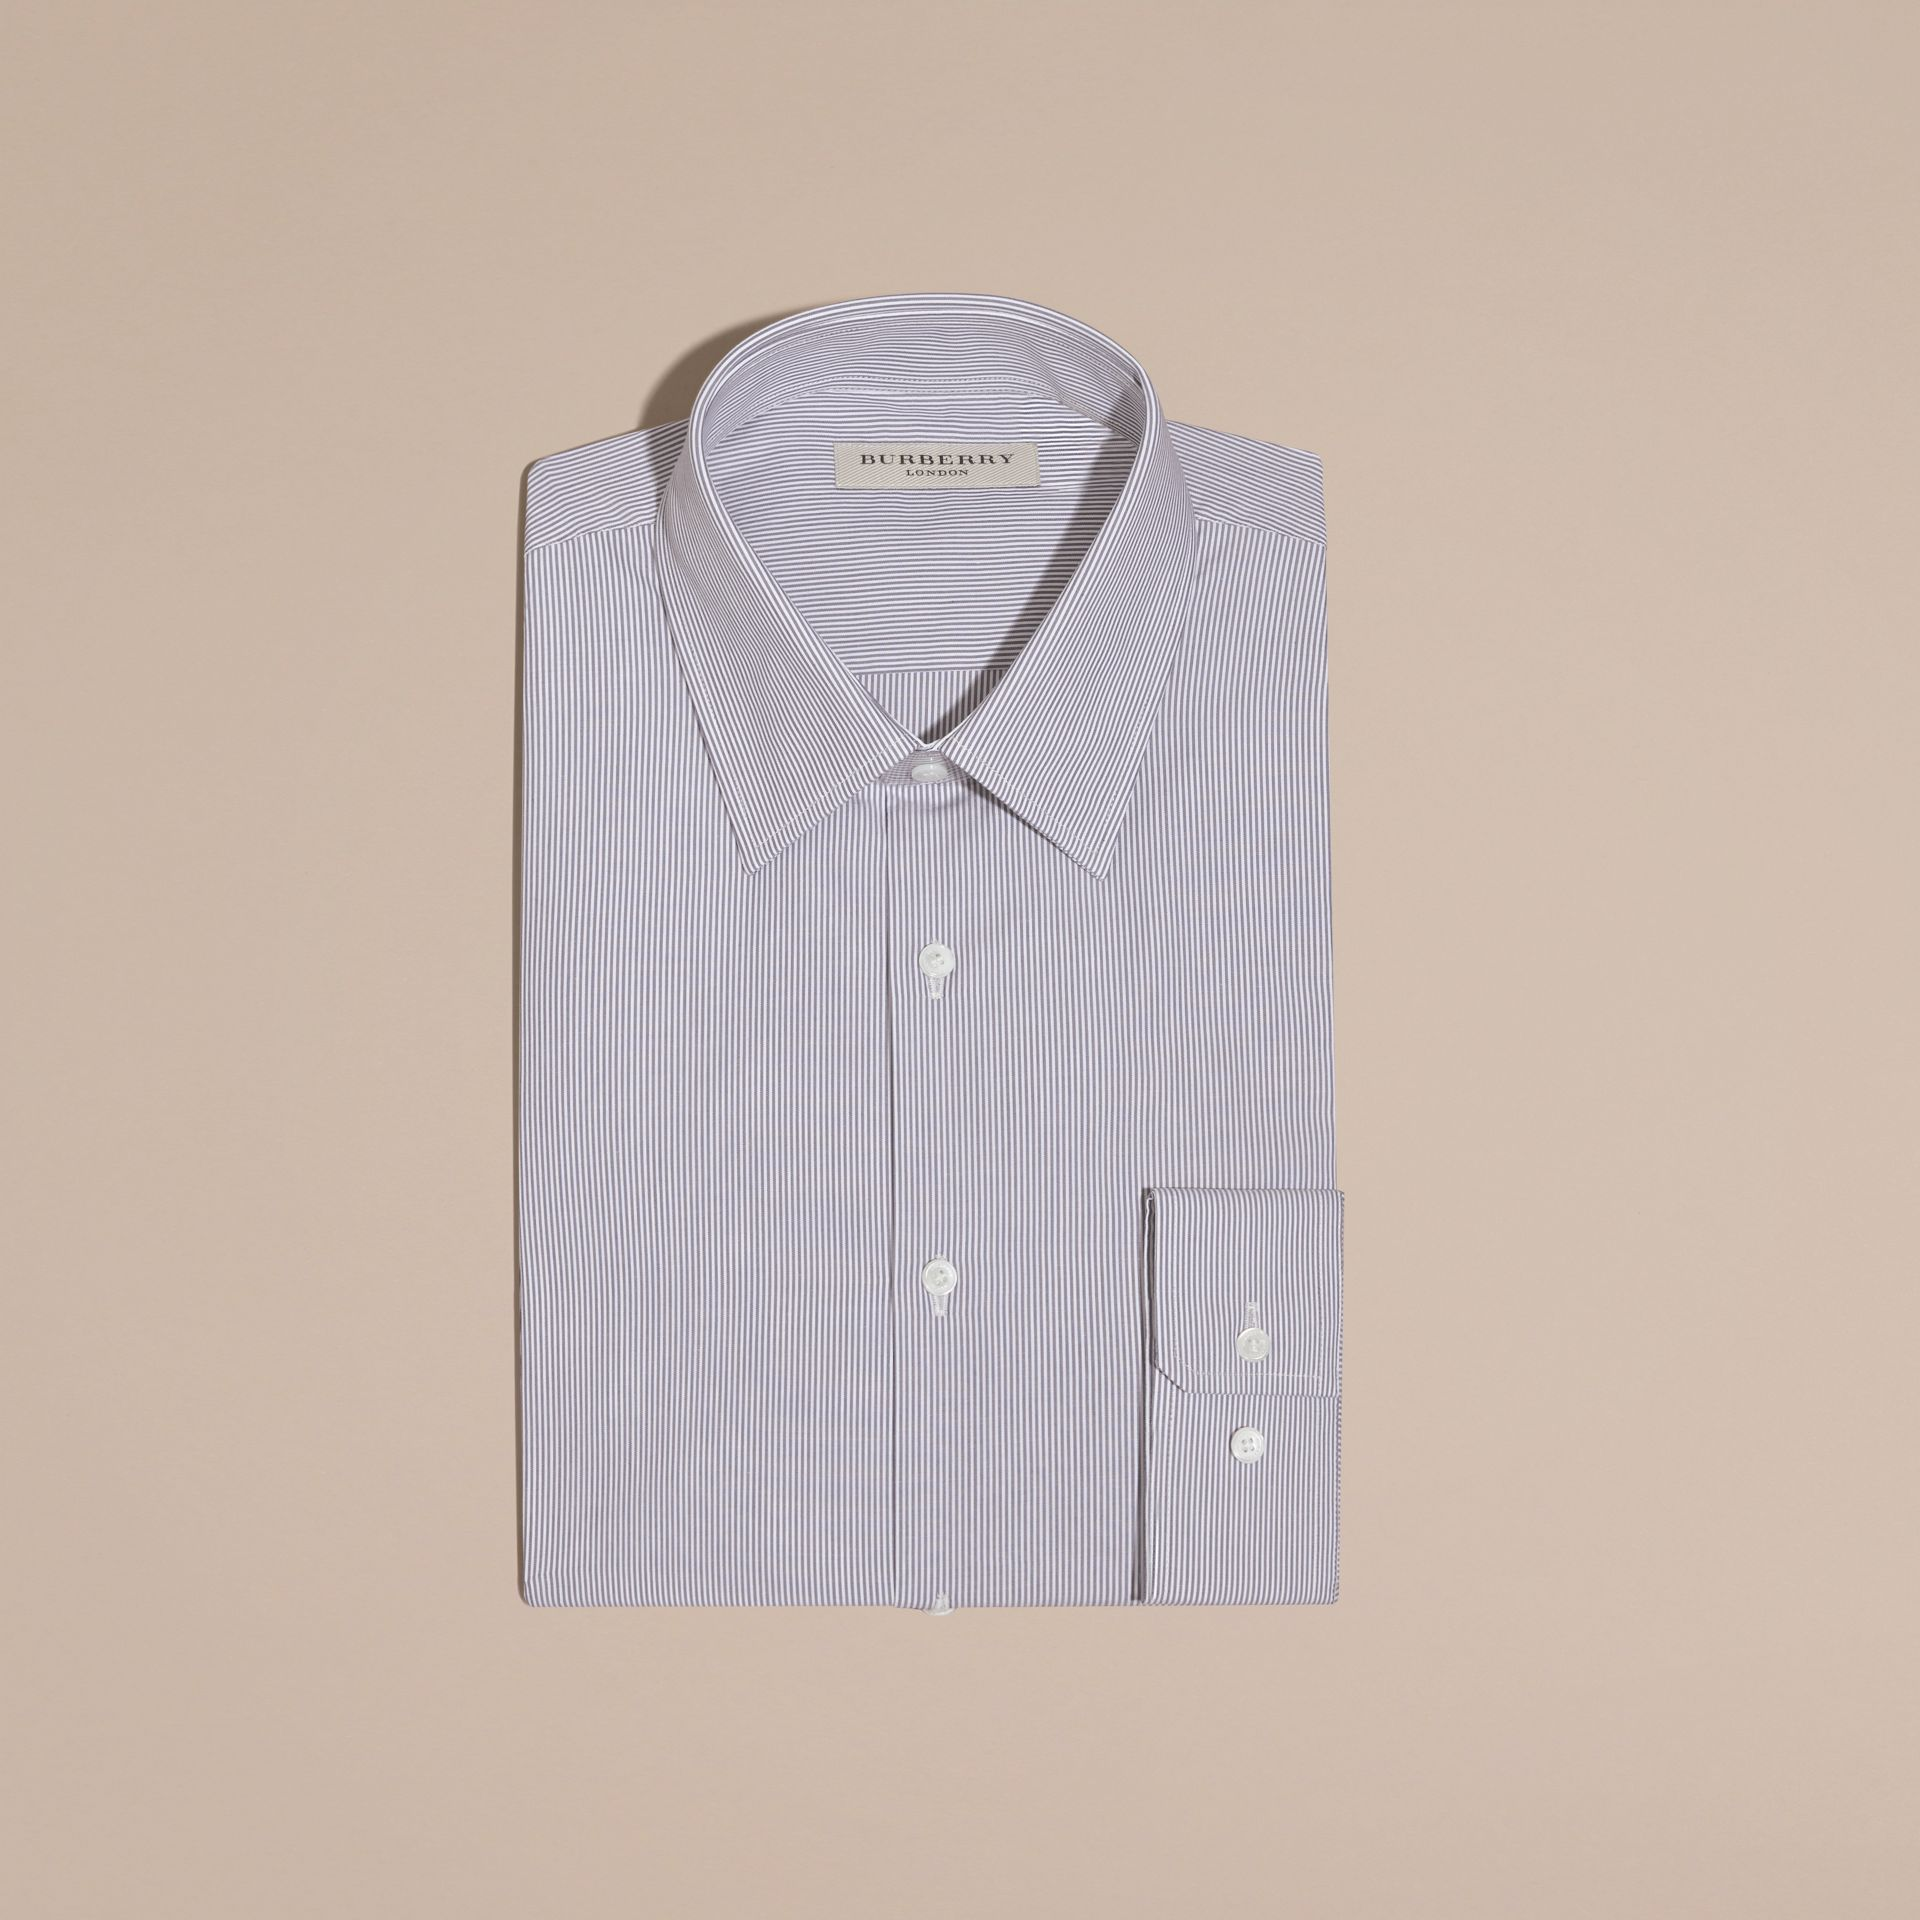 Dark empire blue Modern Fit Striped Cotton Poplin Shirt Dark Empire Blue - gallery image 3